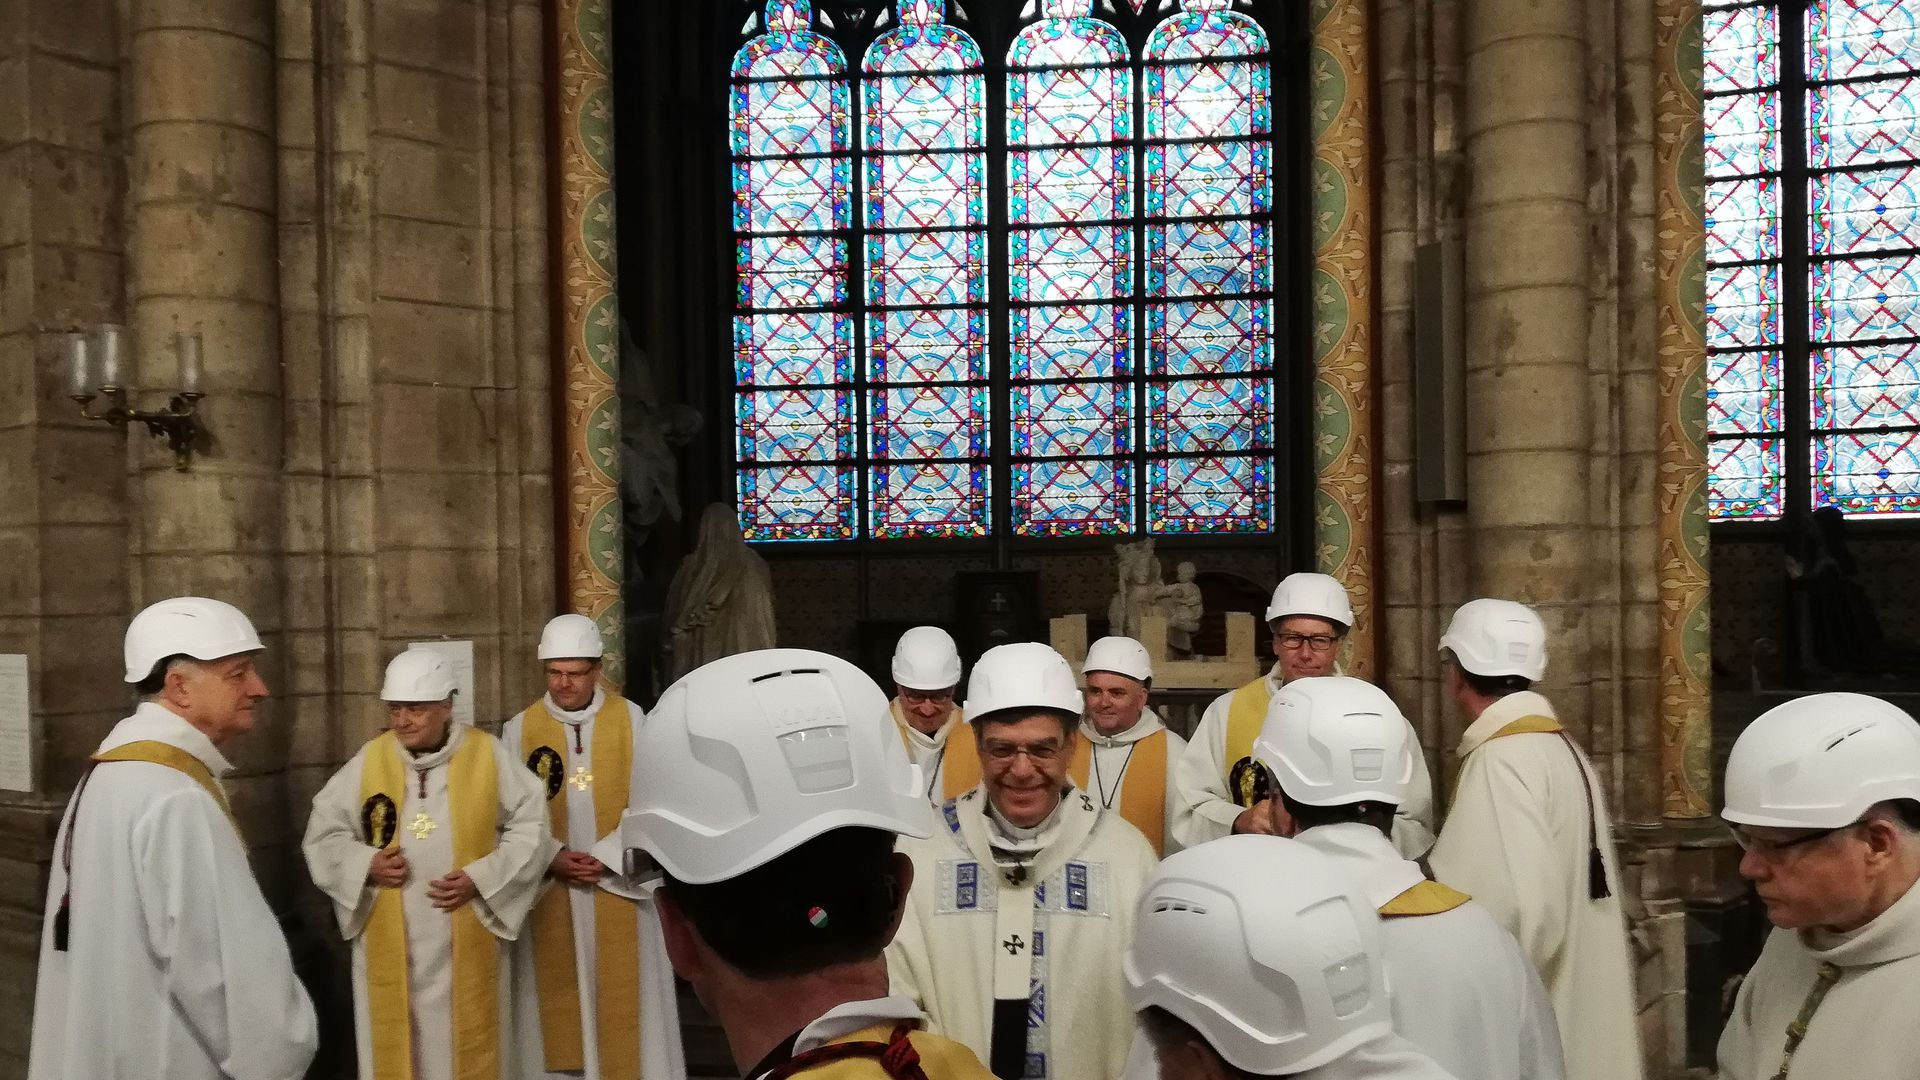 The Archbishop of Paris Michel Aupetit (C) greets other clergy following the first mass in a side chapel, after a fire engulfed the Notre-Dame de Paris cathedral, on June 15, 2019, in Paris.